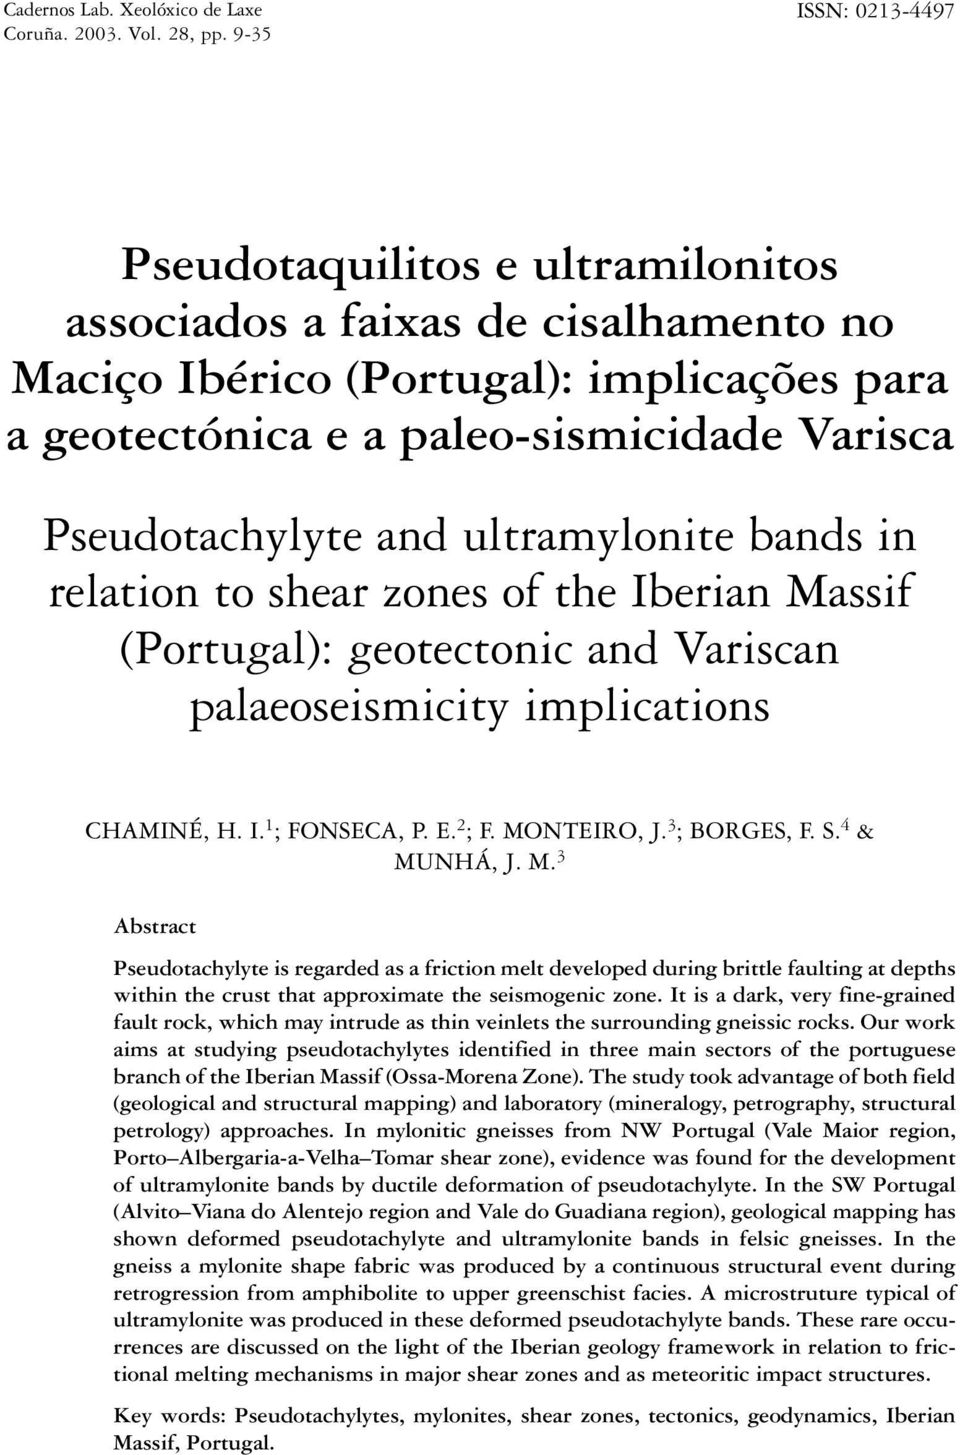 and ultramylonite bands in relation to shear zones of the Iberian Massif (Portugal): geotectonic and Variscan palaeoseismicity implications CHAMINÉ, H. I. 1 ; FONSECA, P. E. 2 ; F. MONTEIRO, J.